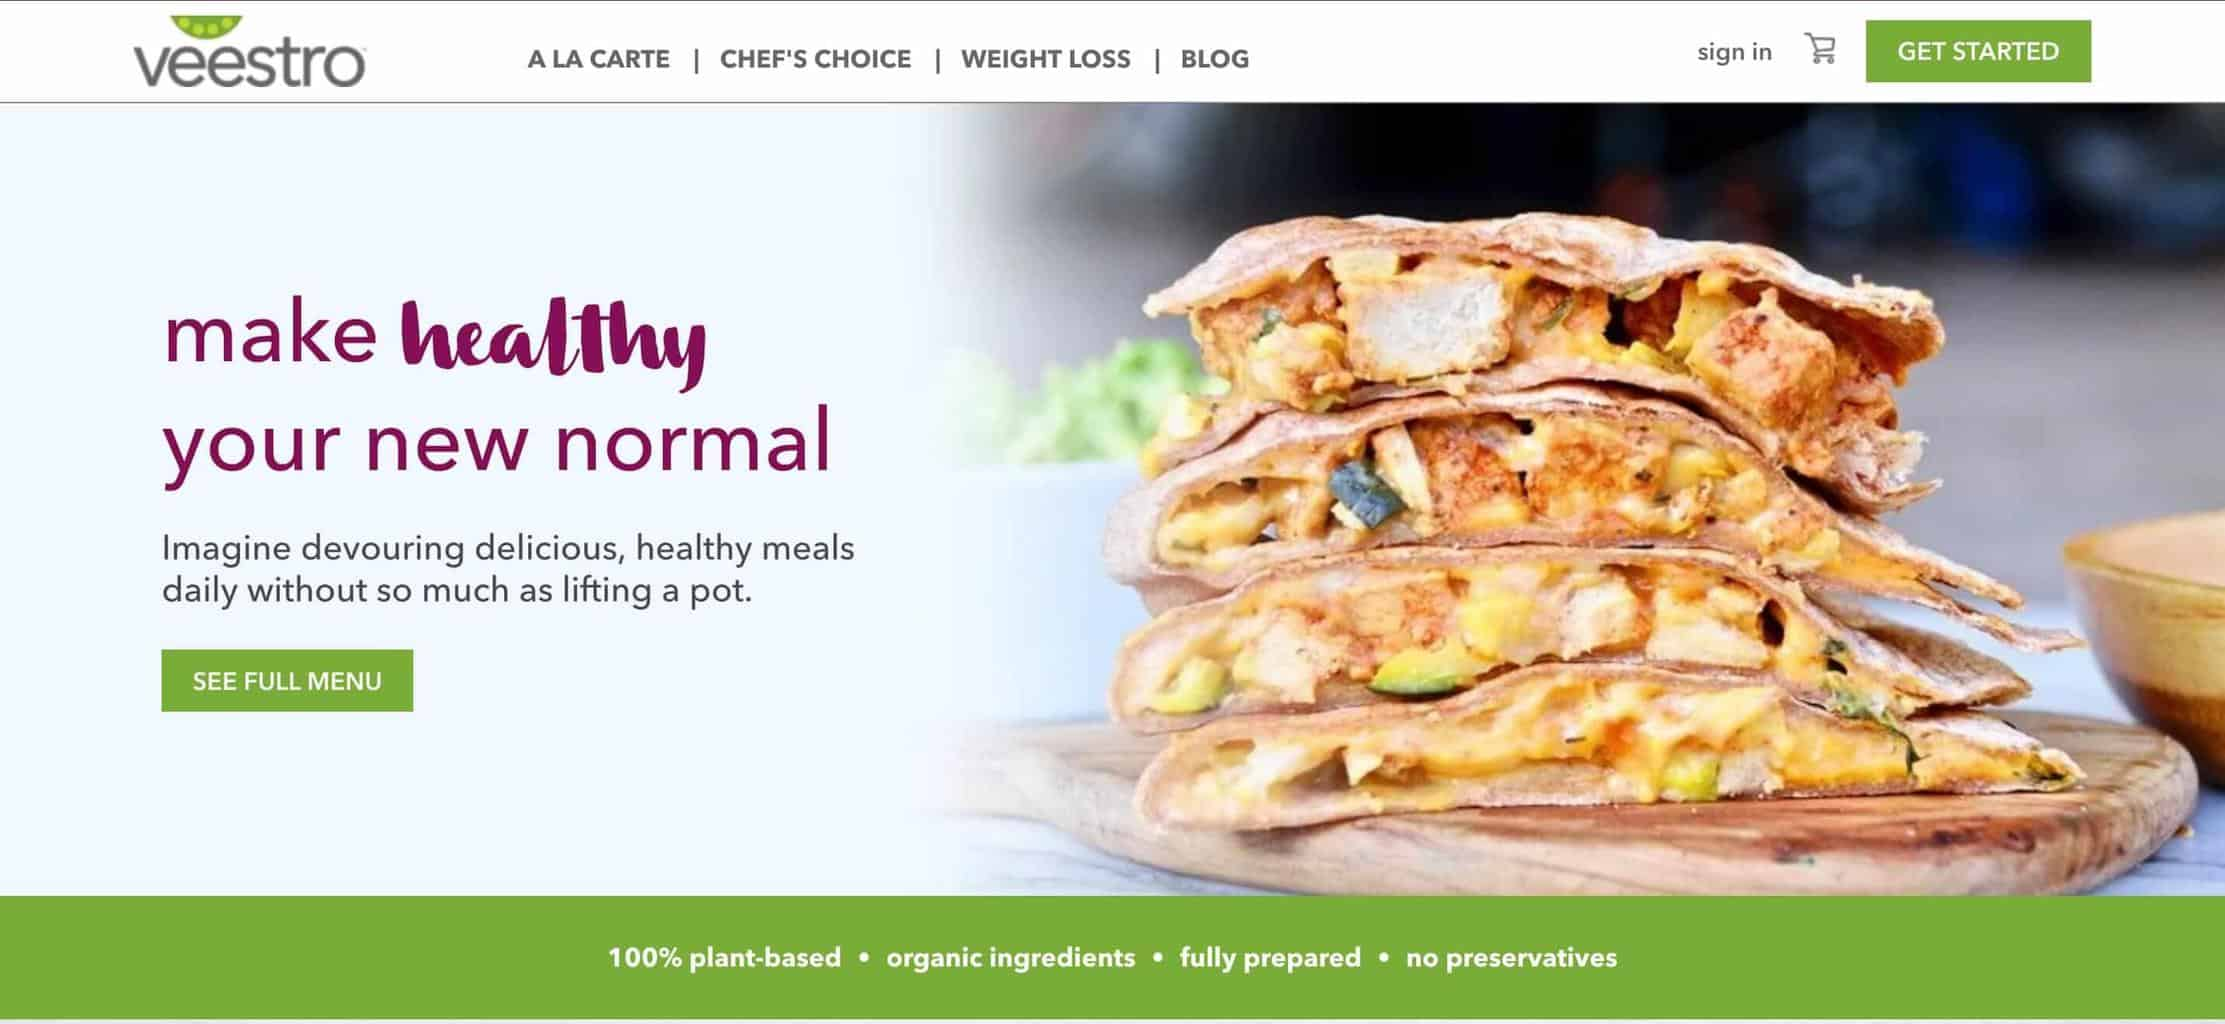 Screenshot of Veestro website showing a stack of sandwiches